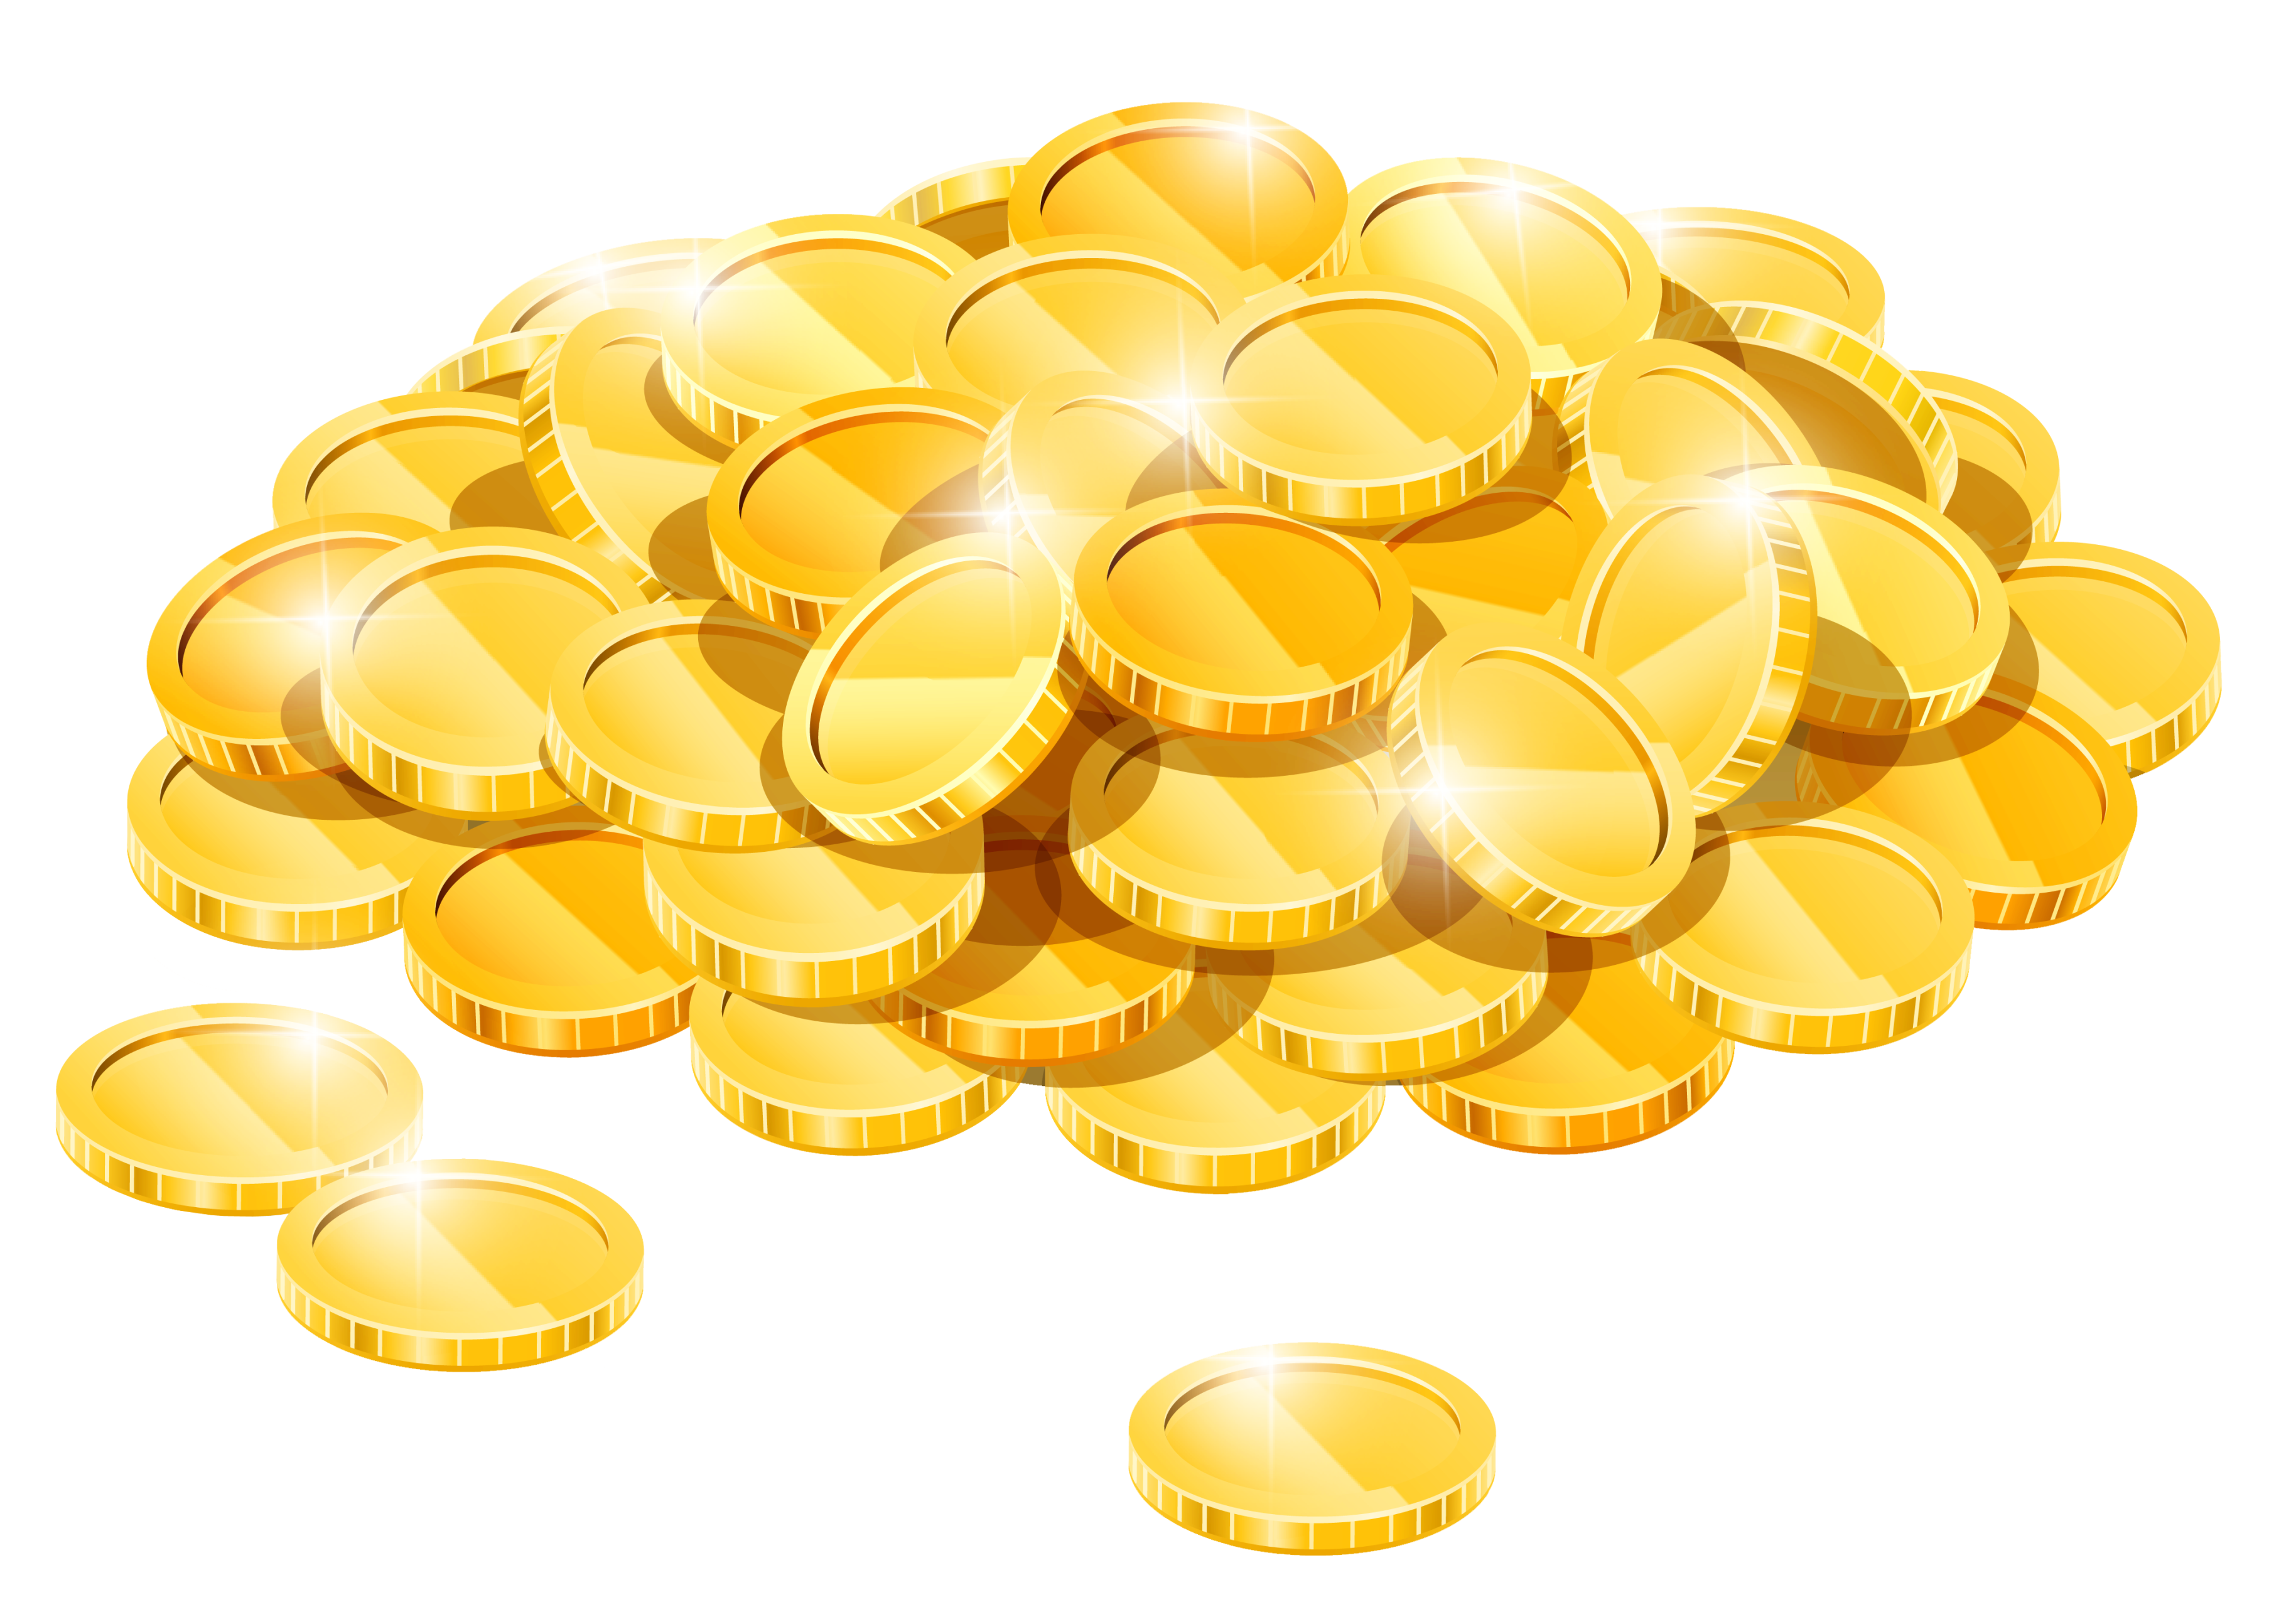 Gold Coins PNG HD - 128563